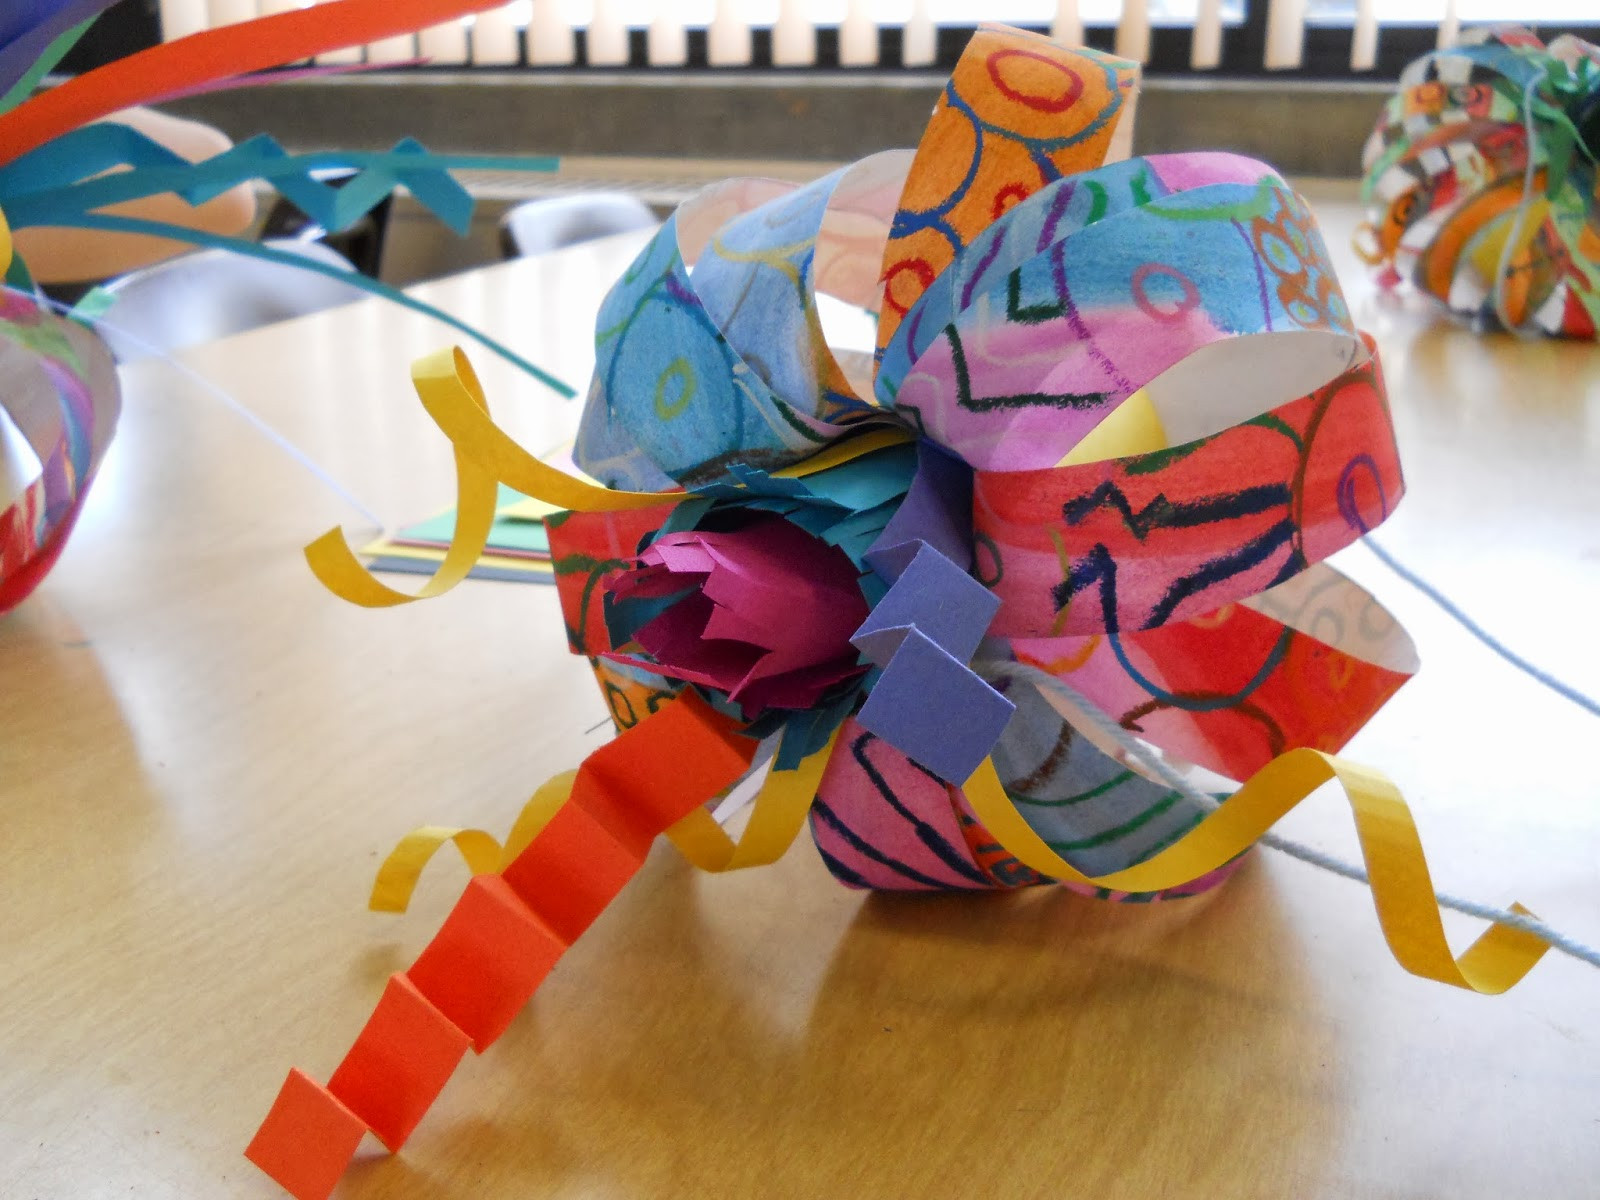 Best ideas about Elementry Art Projects . Save or Pin The Elementary Art Room Now.